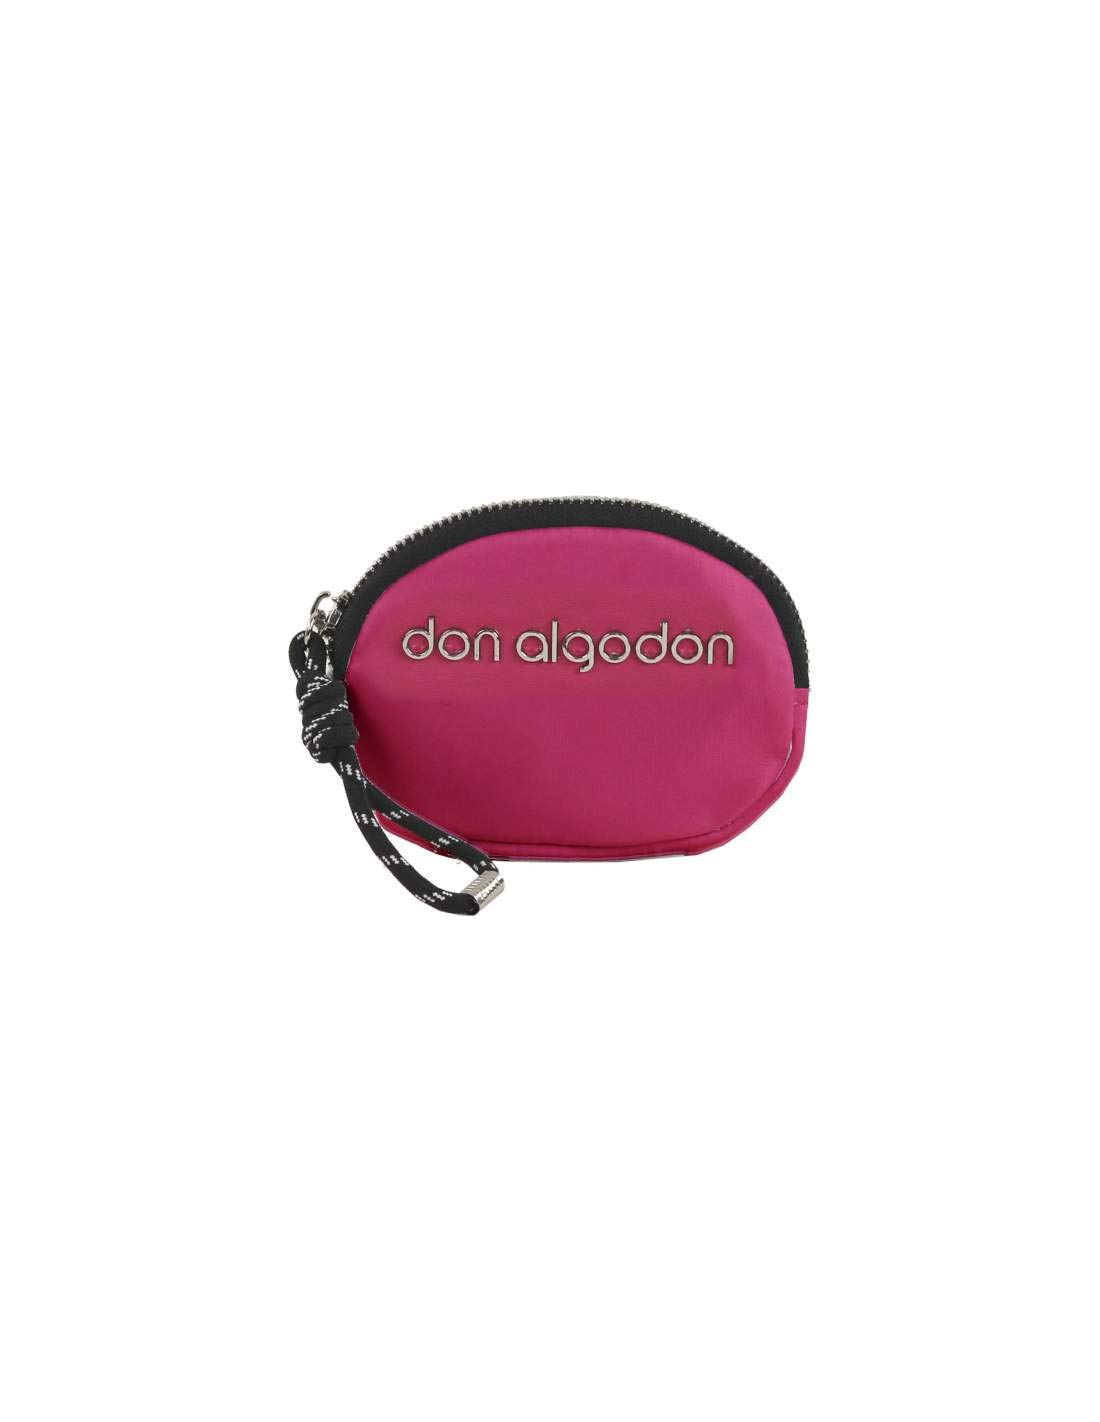 DON ALGODON Casual, Monedero redondo, Fucsia: Amazon.es: Equipaje